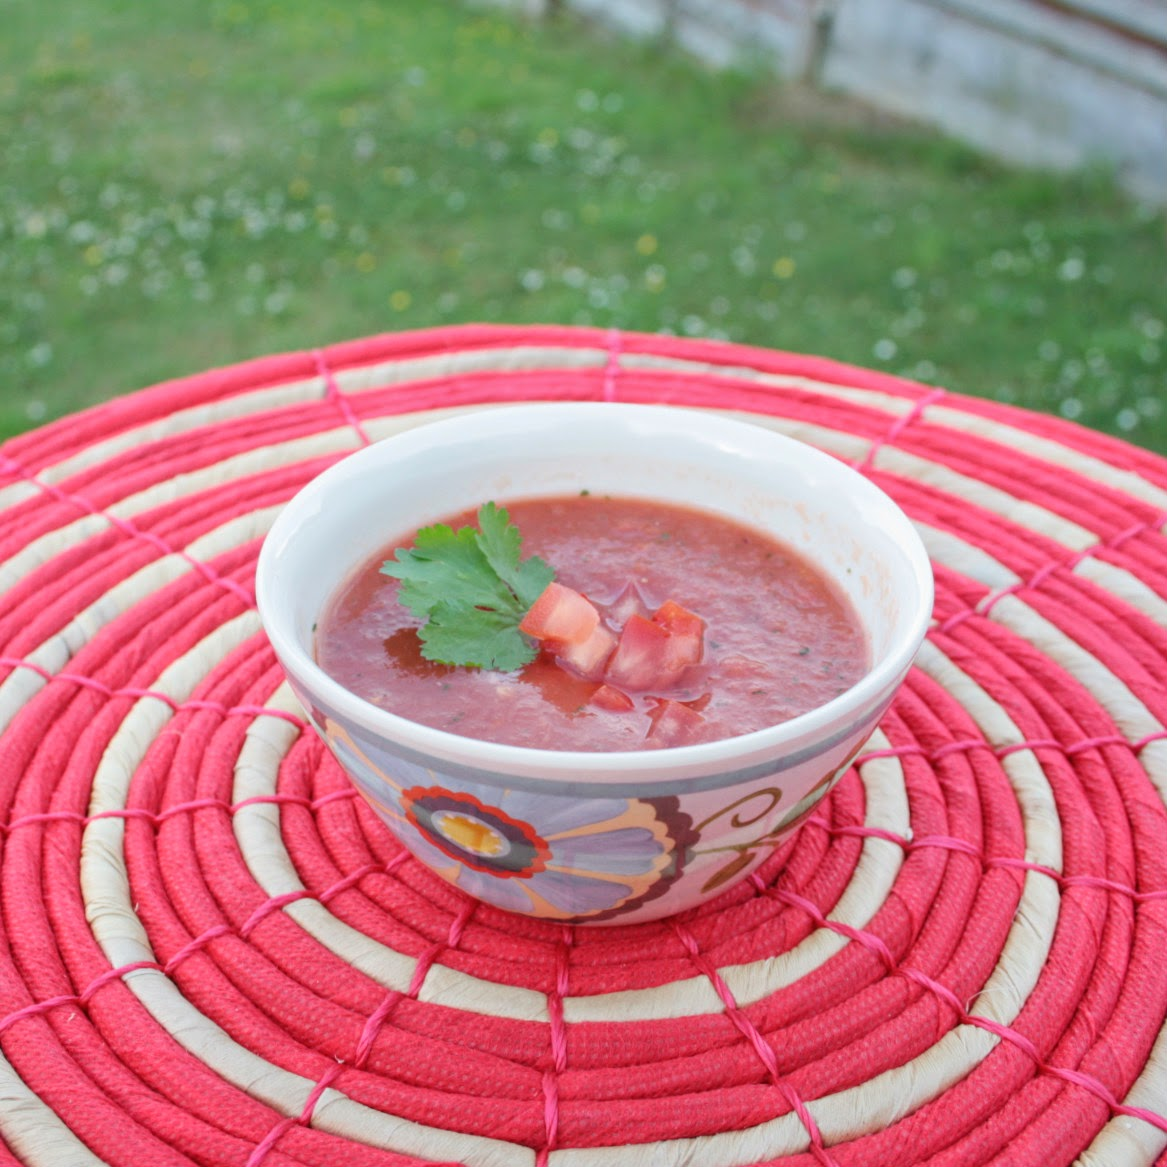 The perfect chilled soup for summer - gazpacho.  All raw ingredients, no gluten, no added fat and packed with flavour. Healthy, light, easy to make and very refreshing